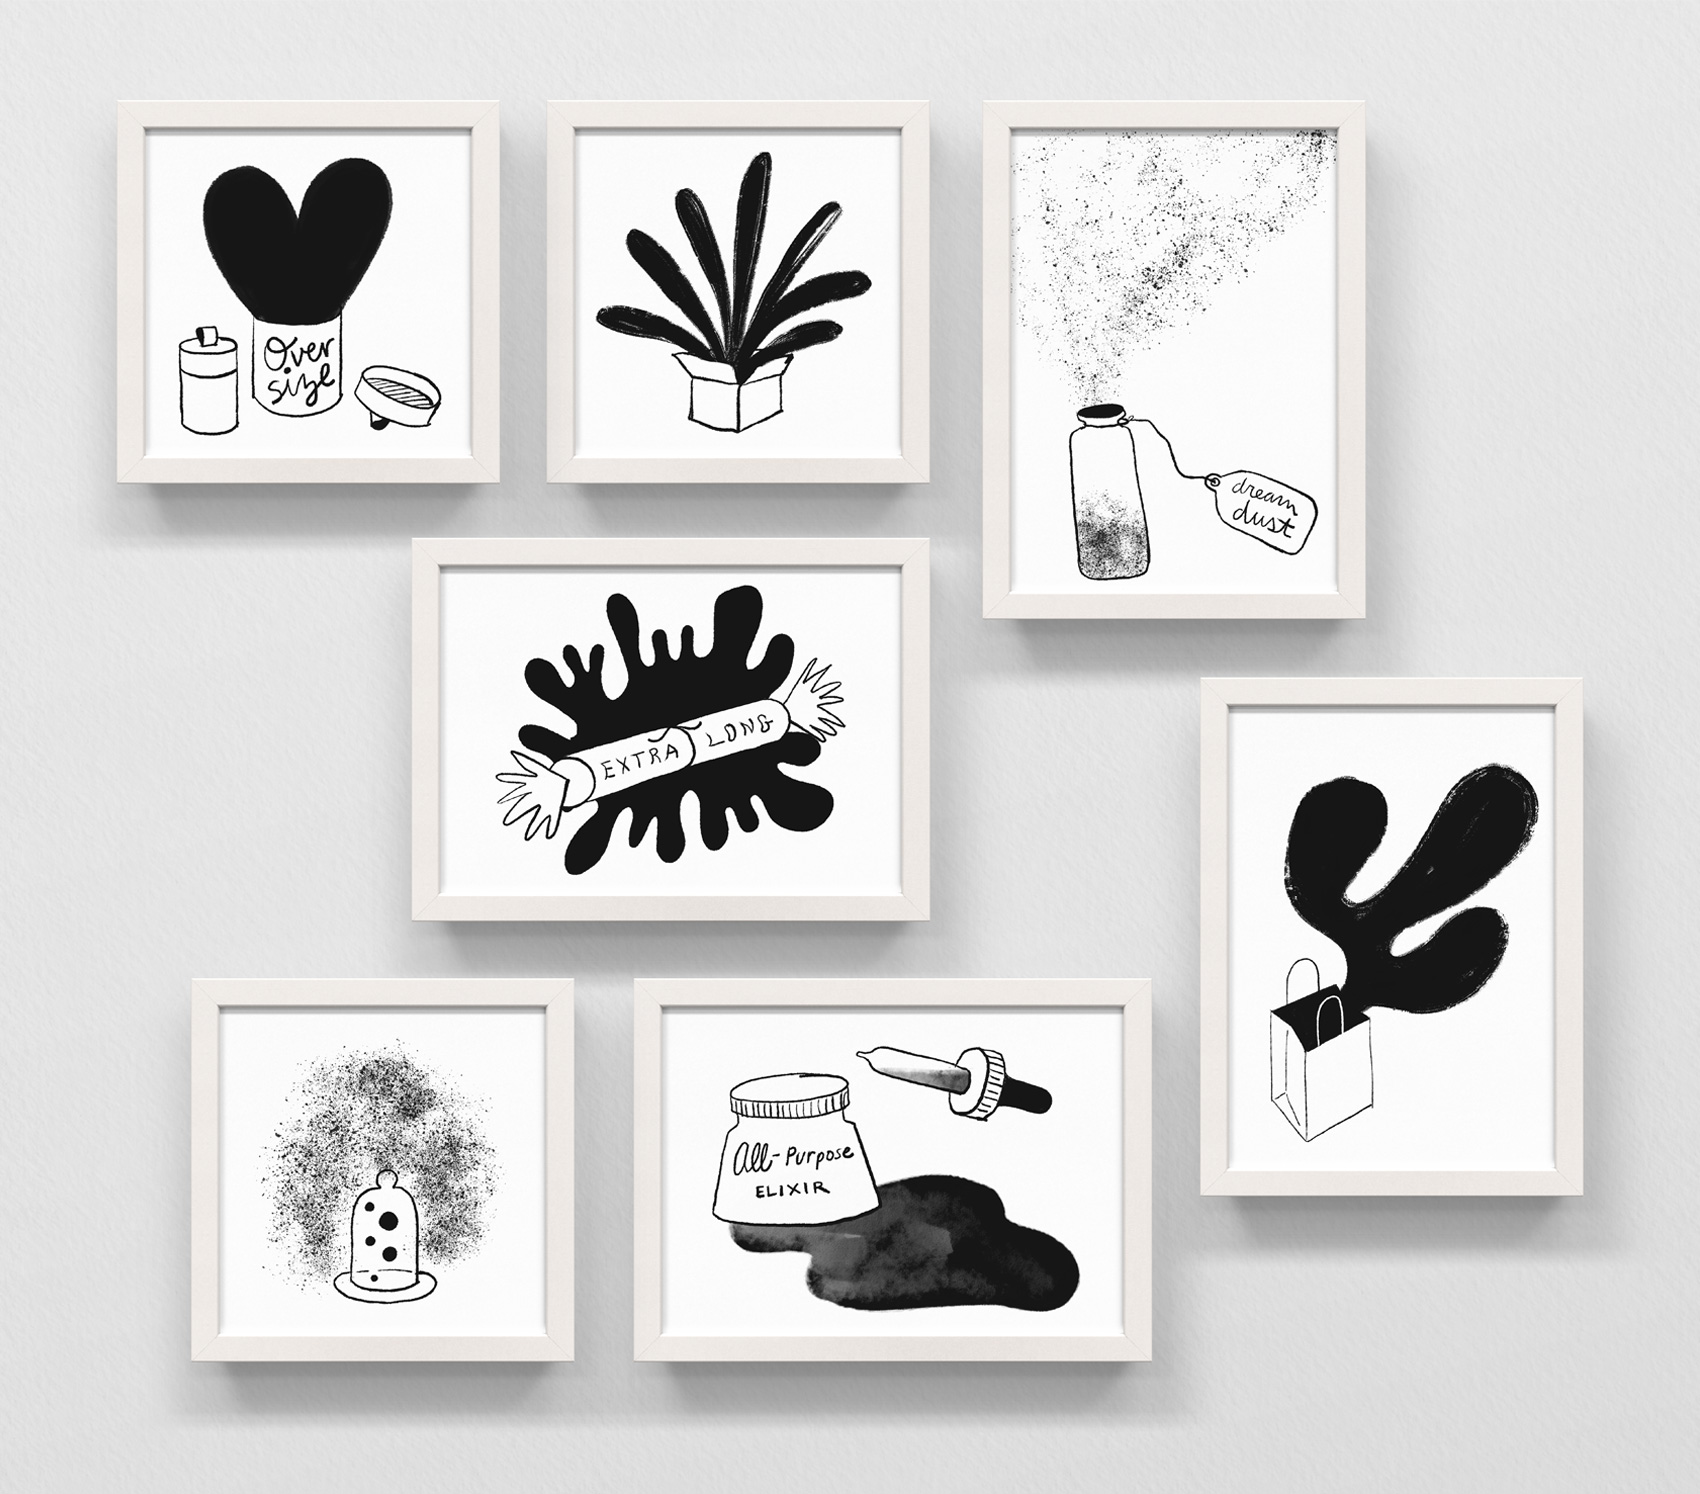 Series of black and white digital illustrations of fantastical gifts, including: oversize heart, exploding box of joy, dream dust, extra long, out of the bag, bell jar bubbles, and all-purpose elixir. Done in a rough scratchy style on an iPadPro.